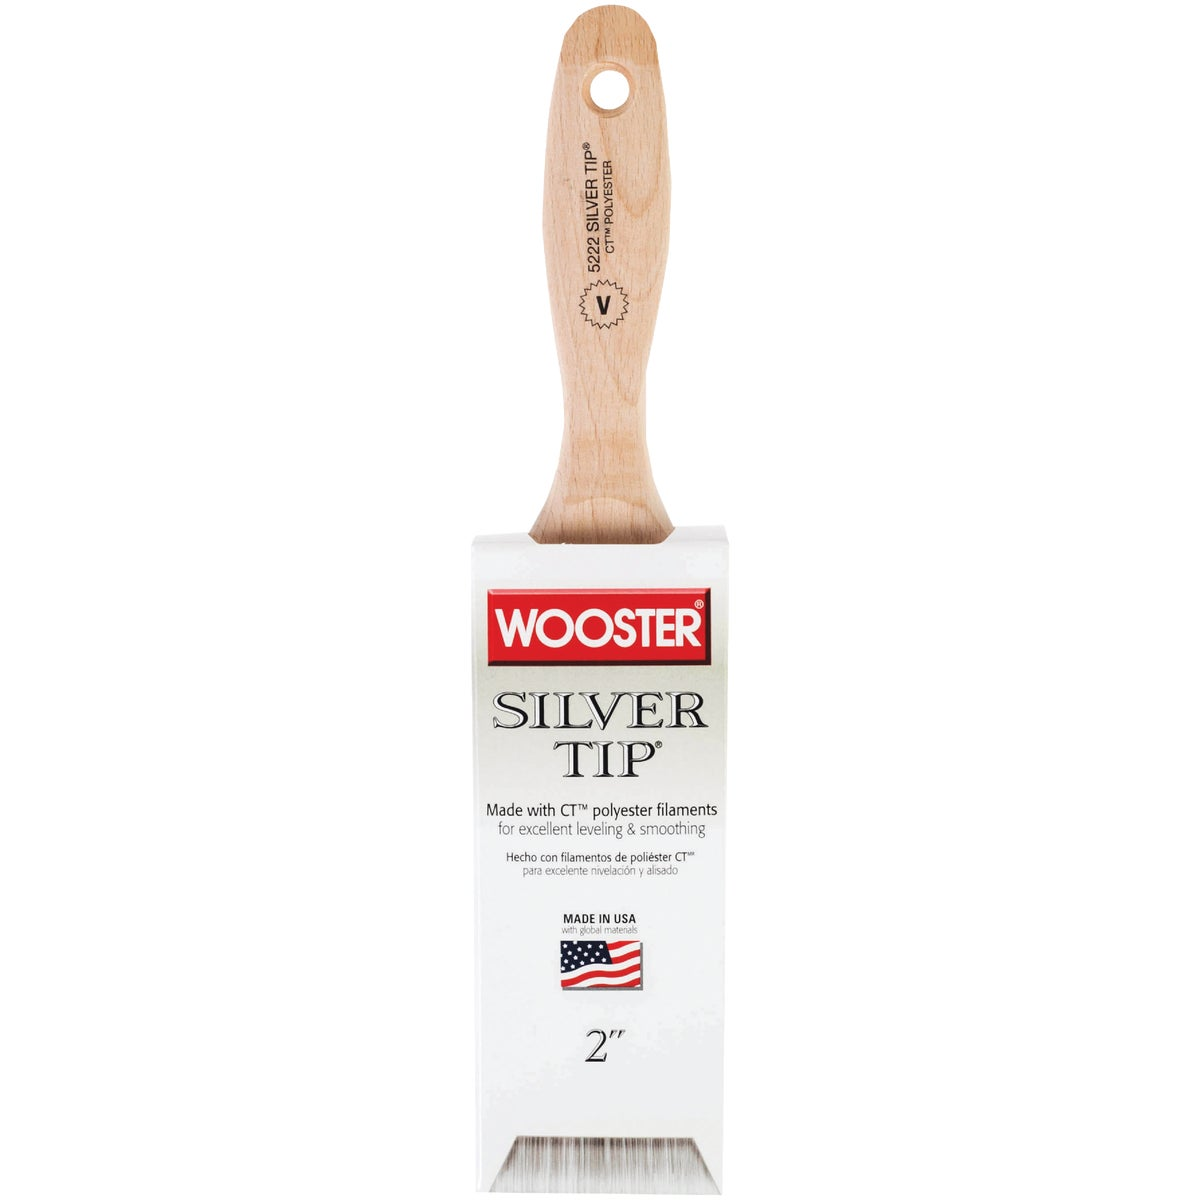 "2"" SILVER TIP BRUSH - 5222-2 by Wooster Brush Co"